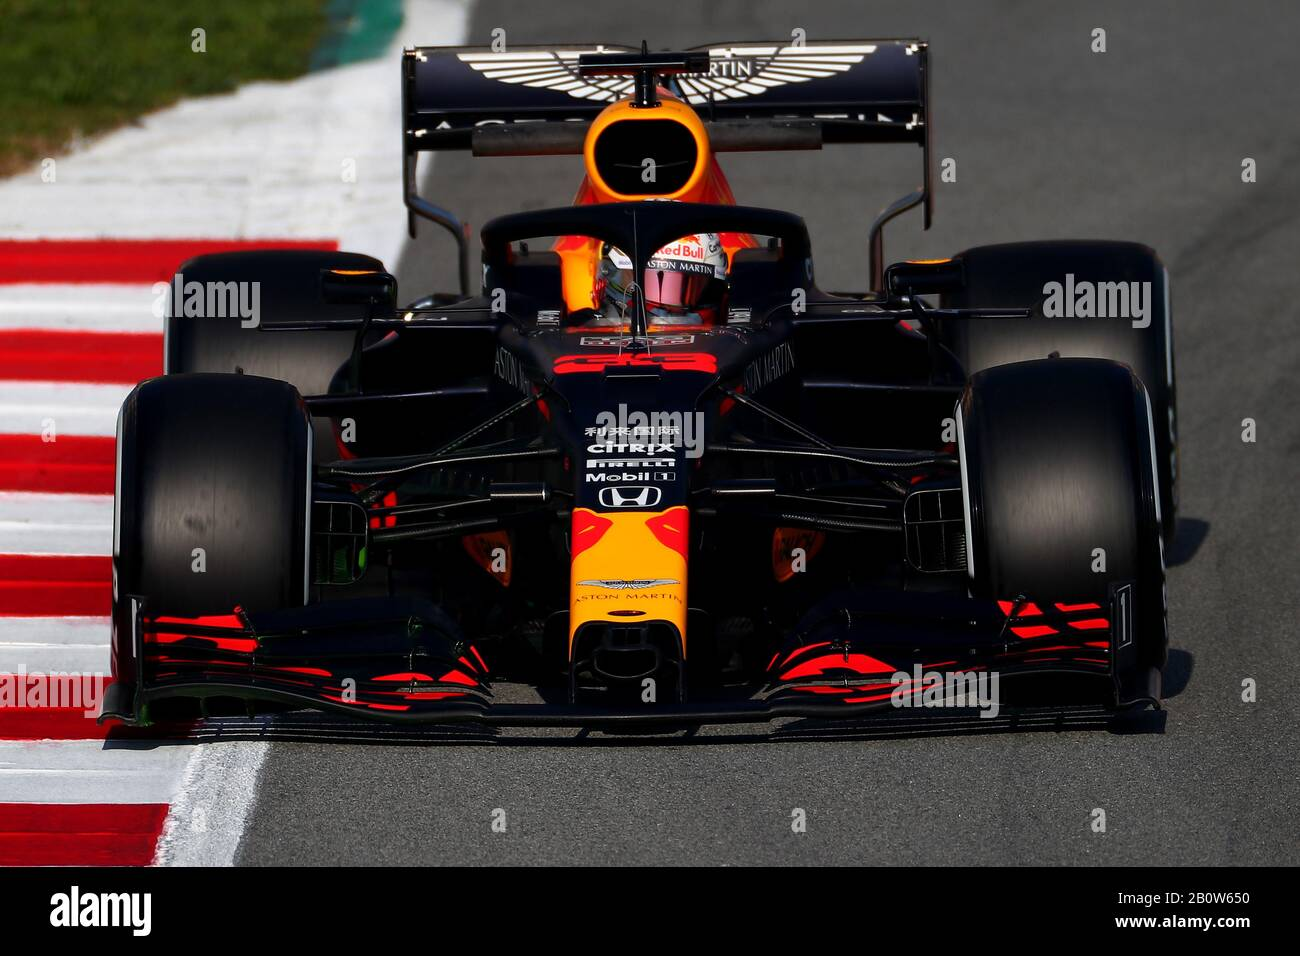 Barcelona Spain 21st Feb 2020 33 Max Verstappen Aston Martin Red Bull Racing Honda Formula 1